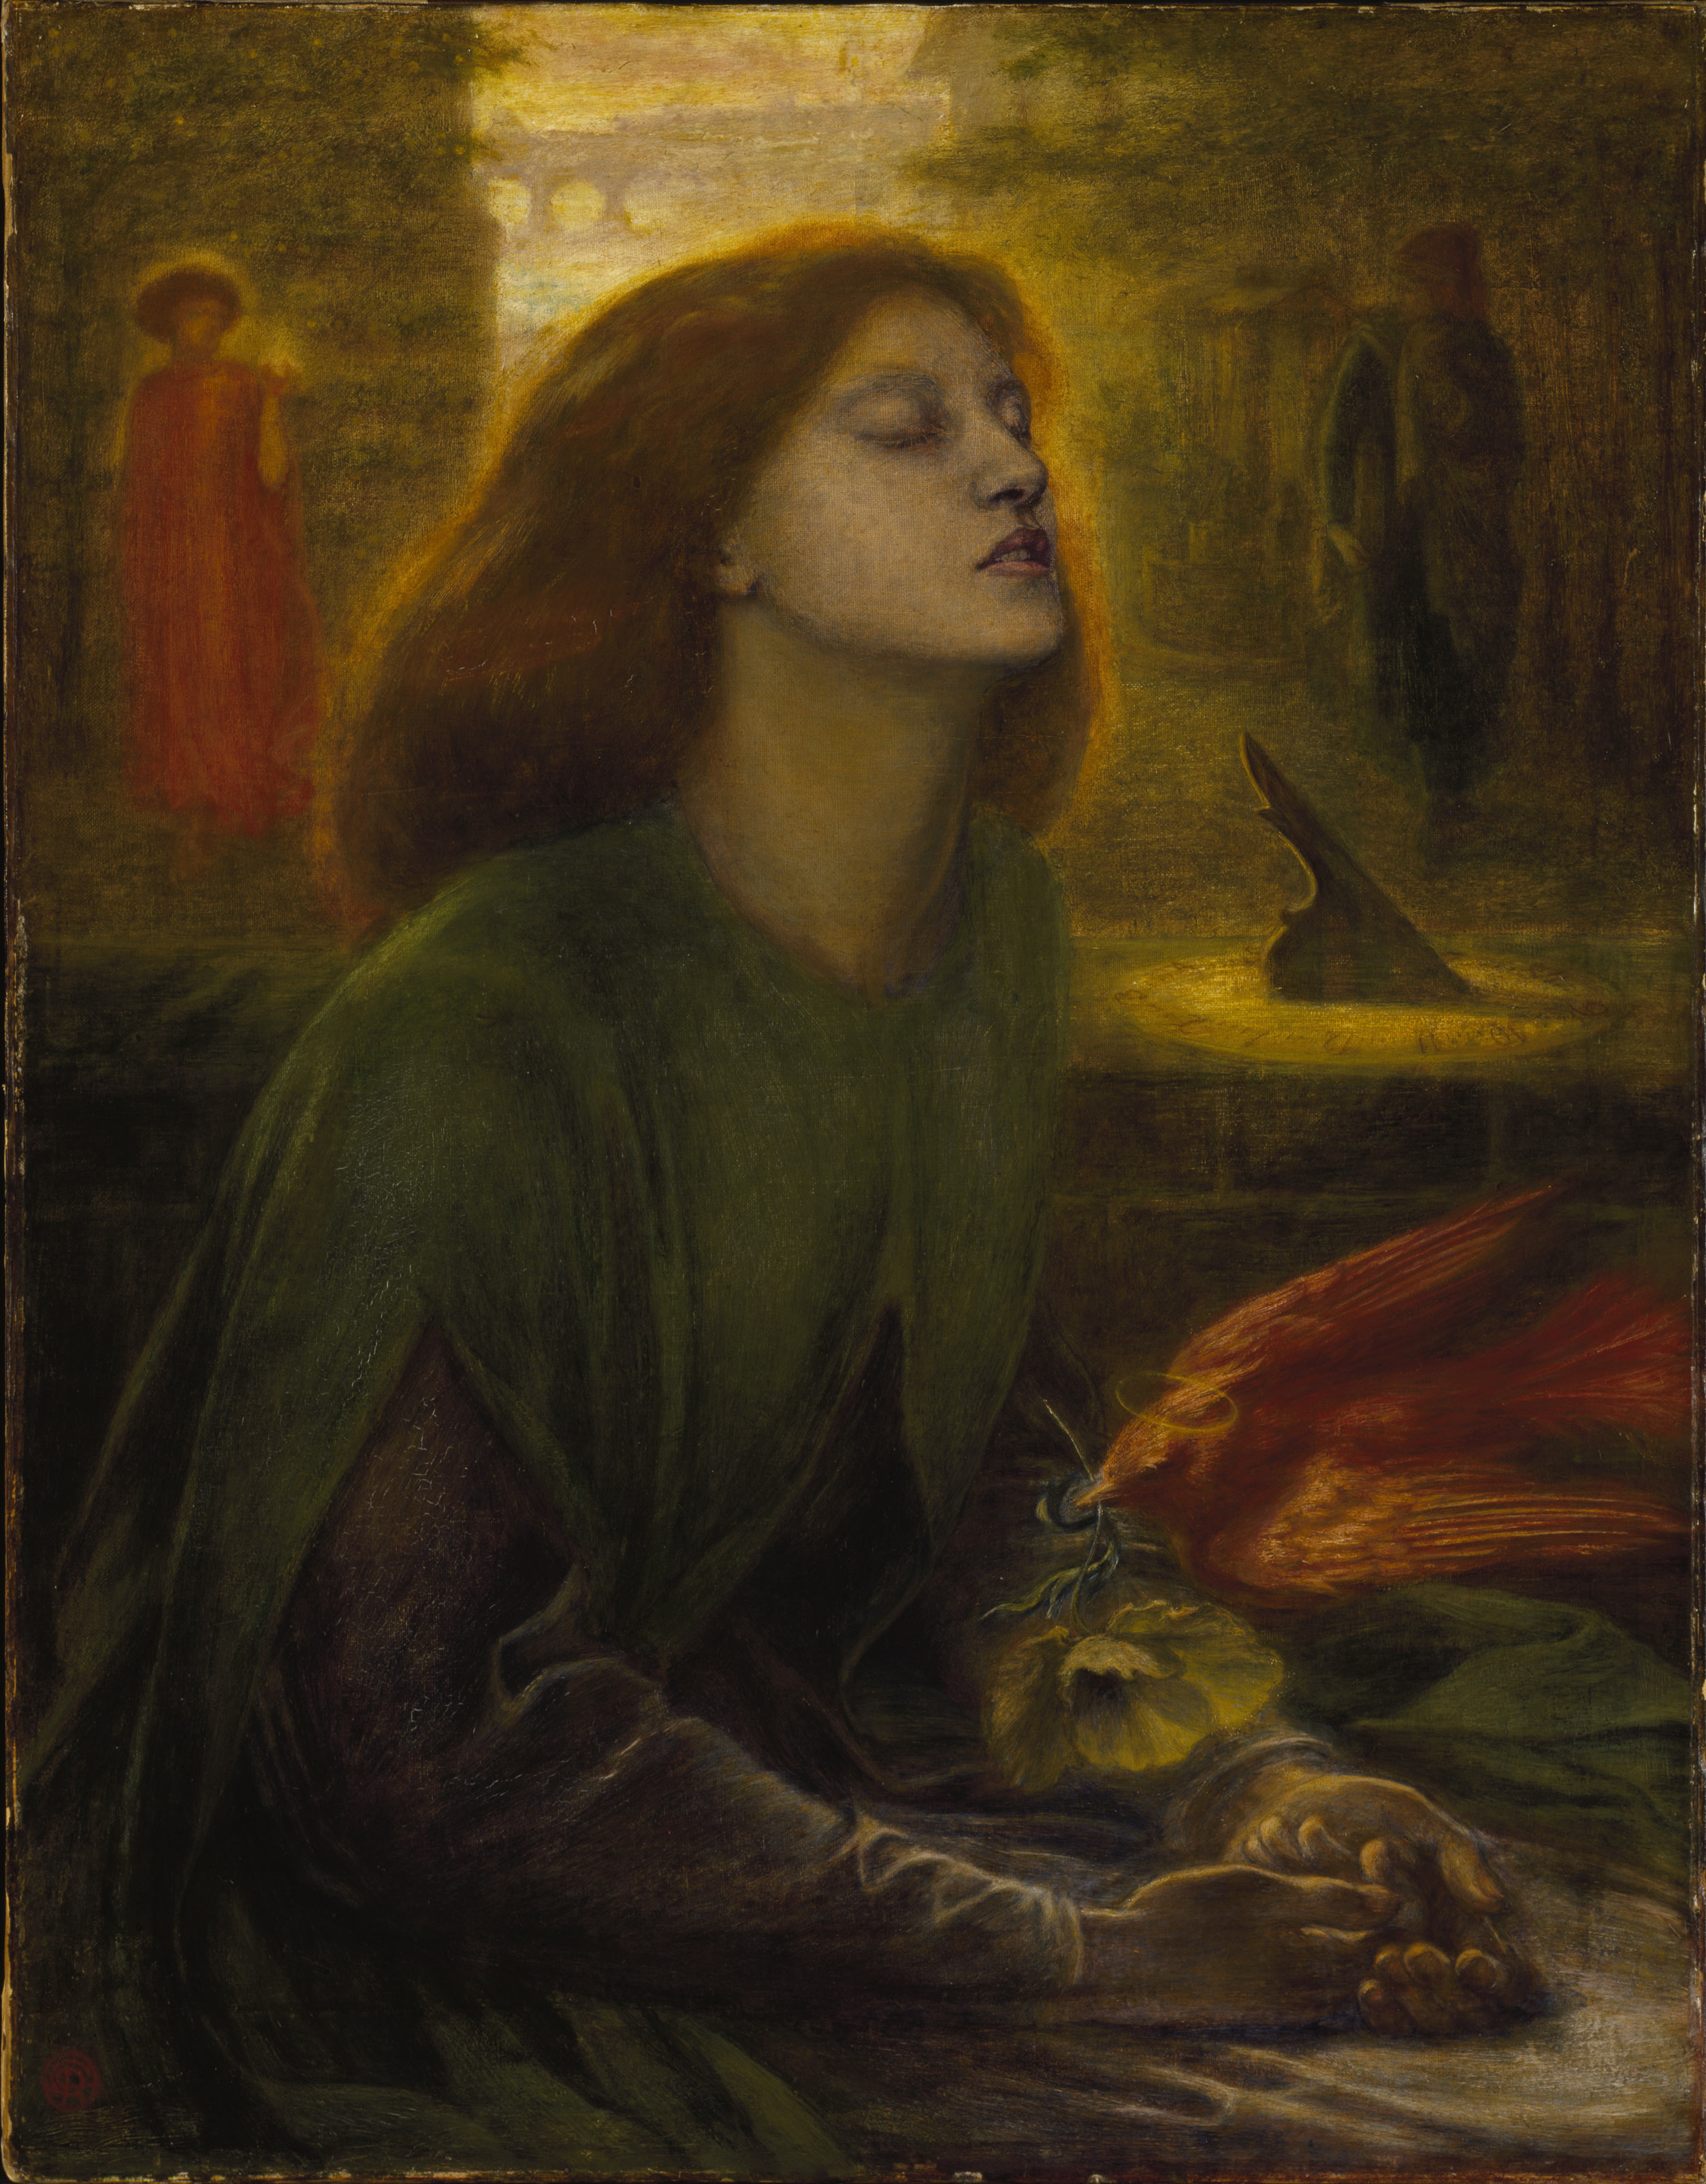 Dante Gabriel Rossetti: Beata Beatrix, ca 1864-70, PD-Art, via Wikimedia Commons